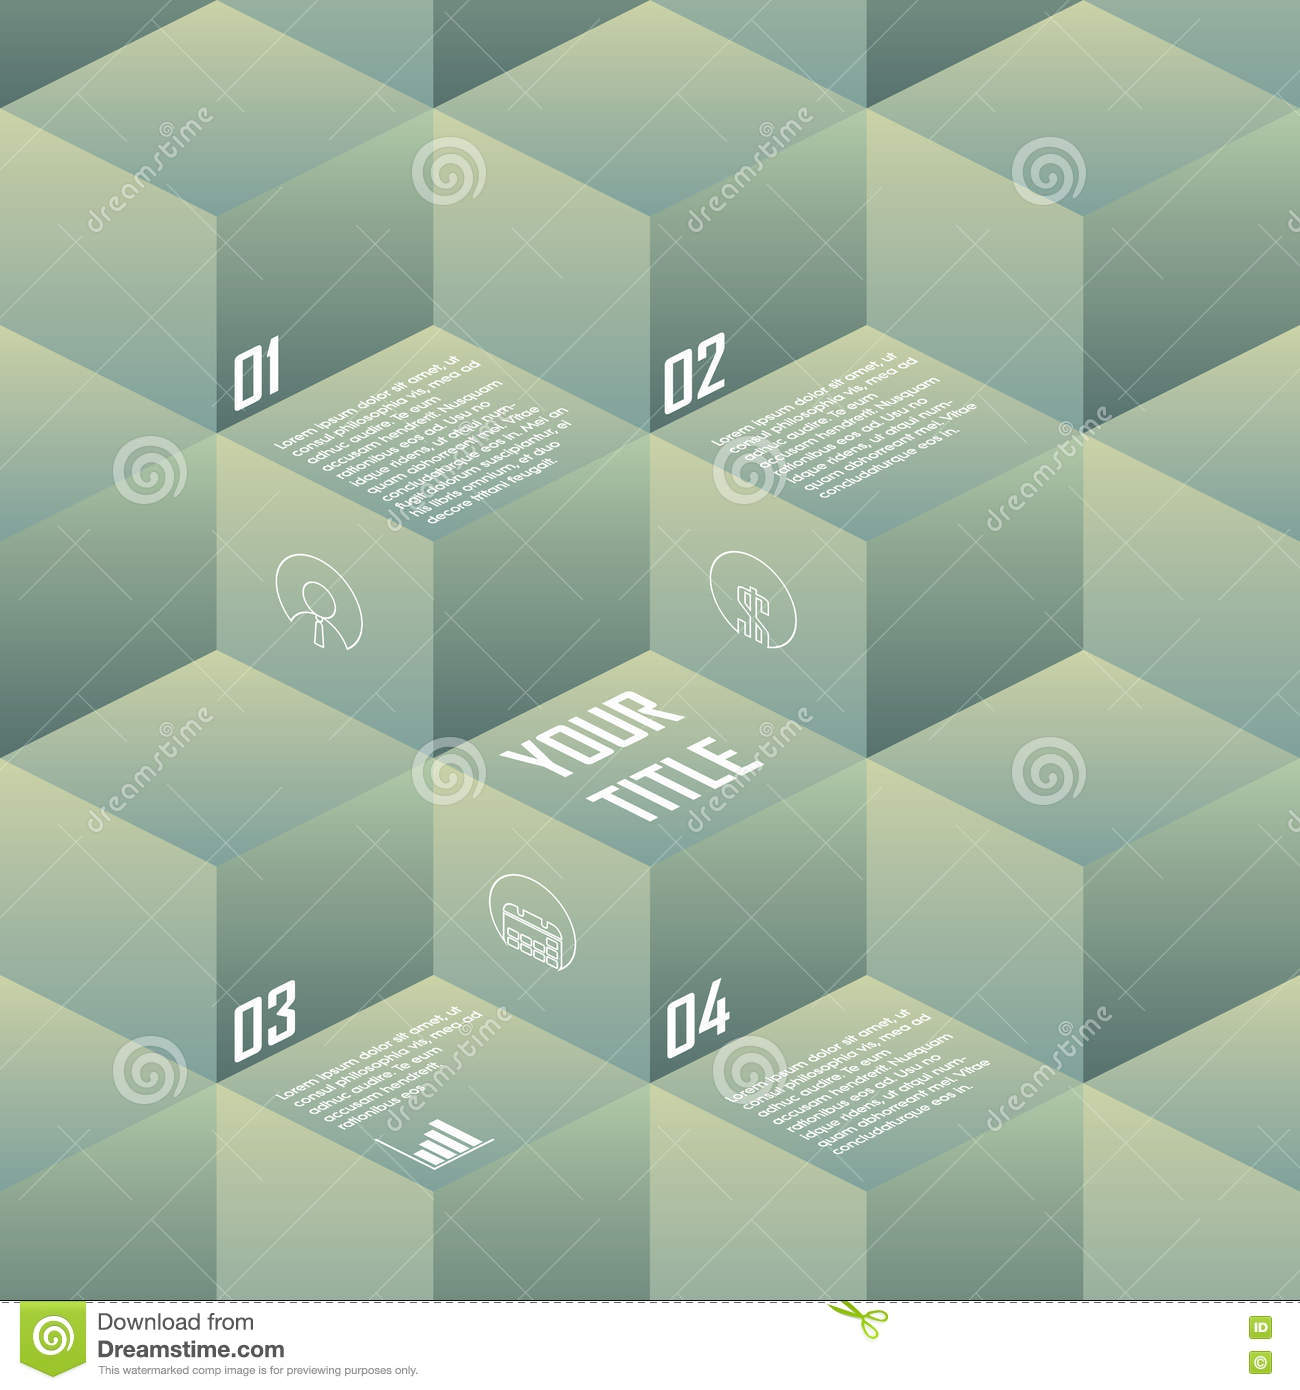 Isometric background cubes in retro vintage colors. Geometry backdrop suitable for infographics, presentations